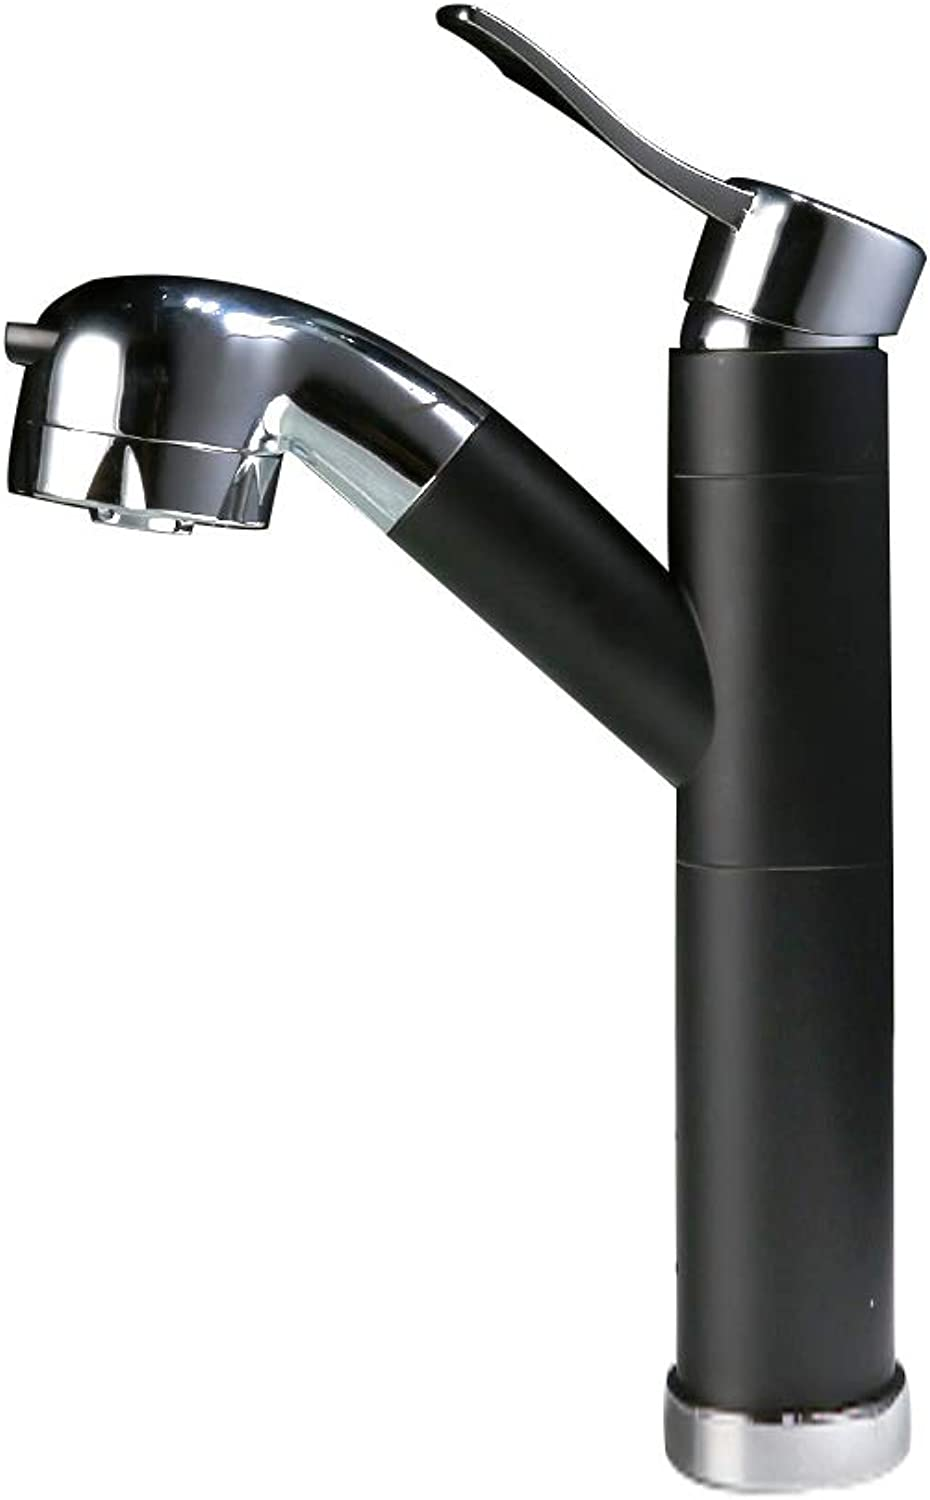 LIUSHUI Full Copper Faucet, Can Pull The redatable Basin Faucet, Bathroom Telescopic Faucet, Multi-style and Multi-color Optional (color   BLACK, Design   B)